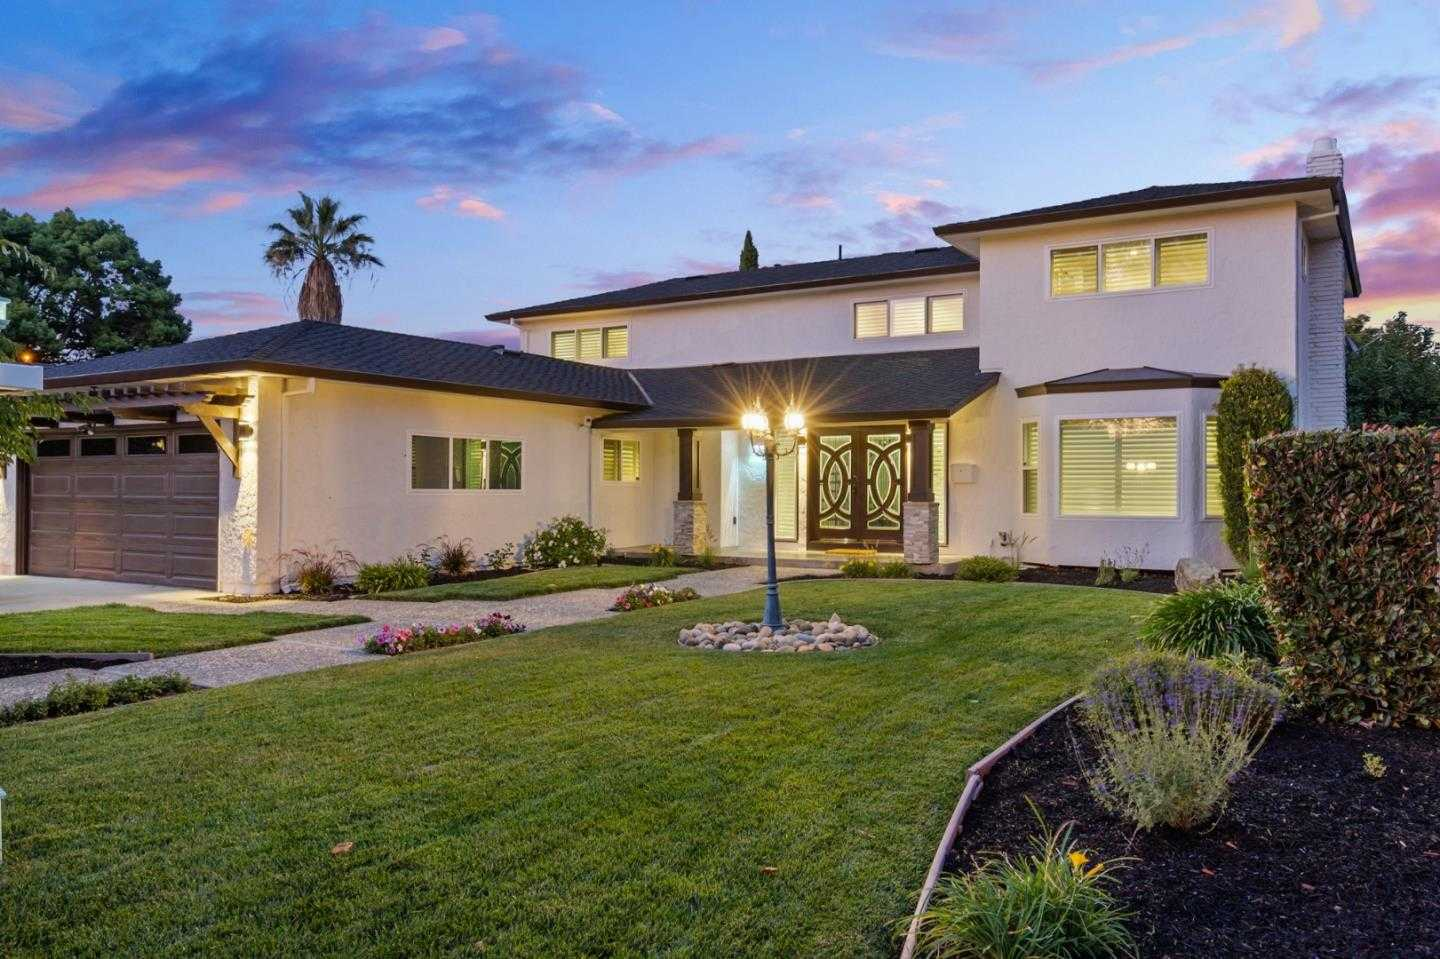 $2,088,000 - 4Br/4Ba -  for Sale in San Jose